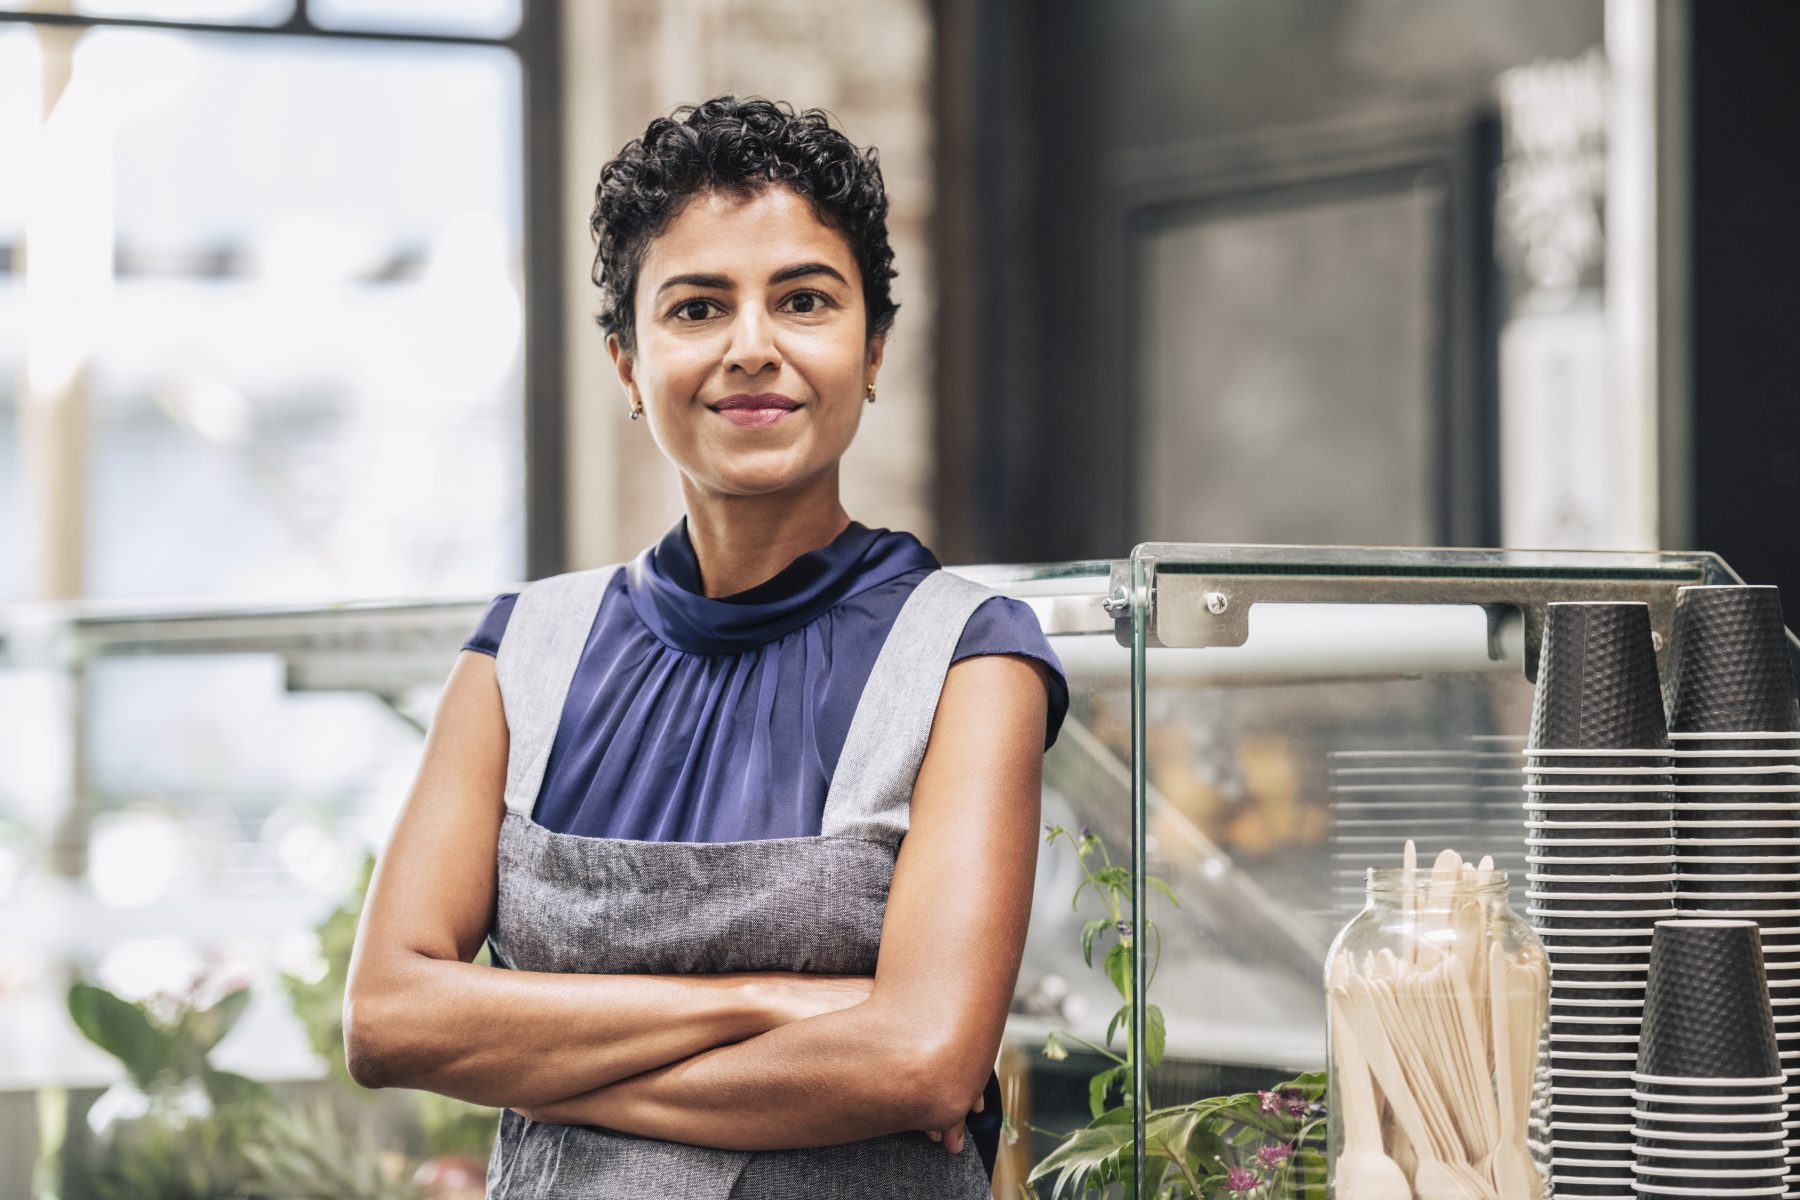 Confident mature woman at work wearing apron at coffee shop.